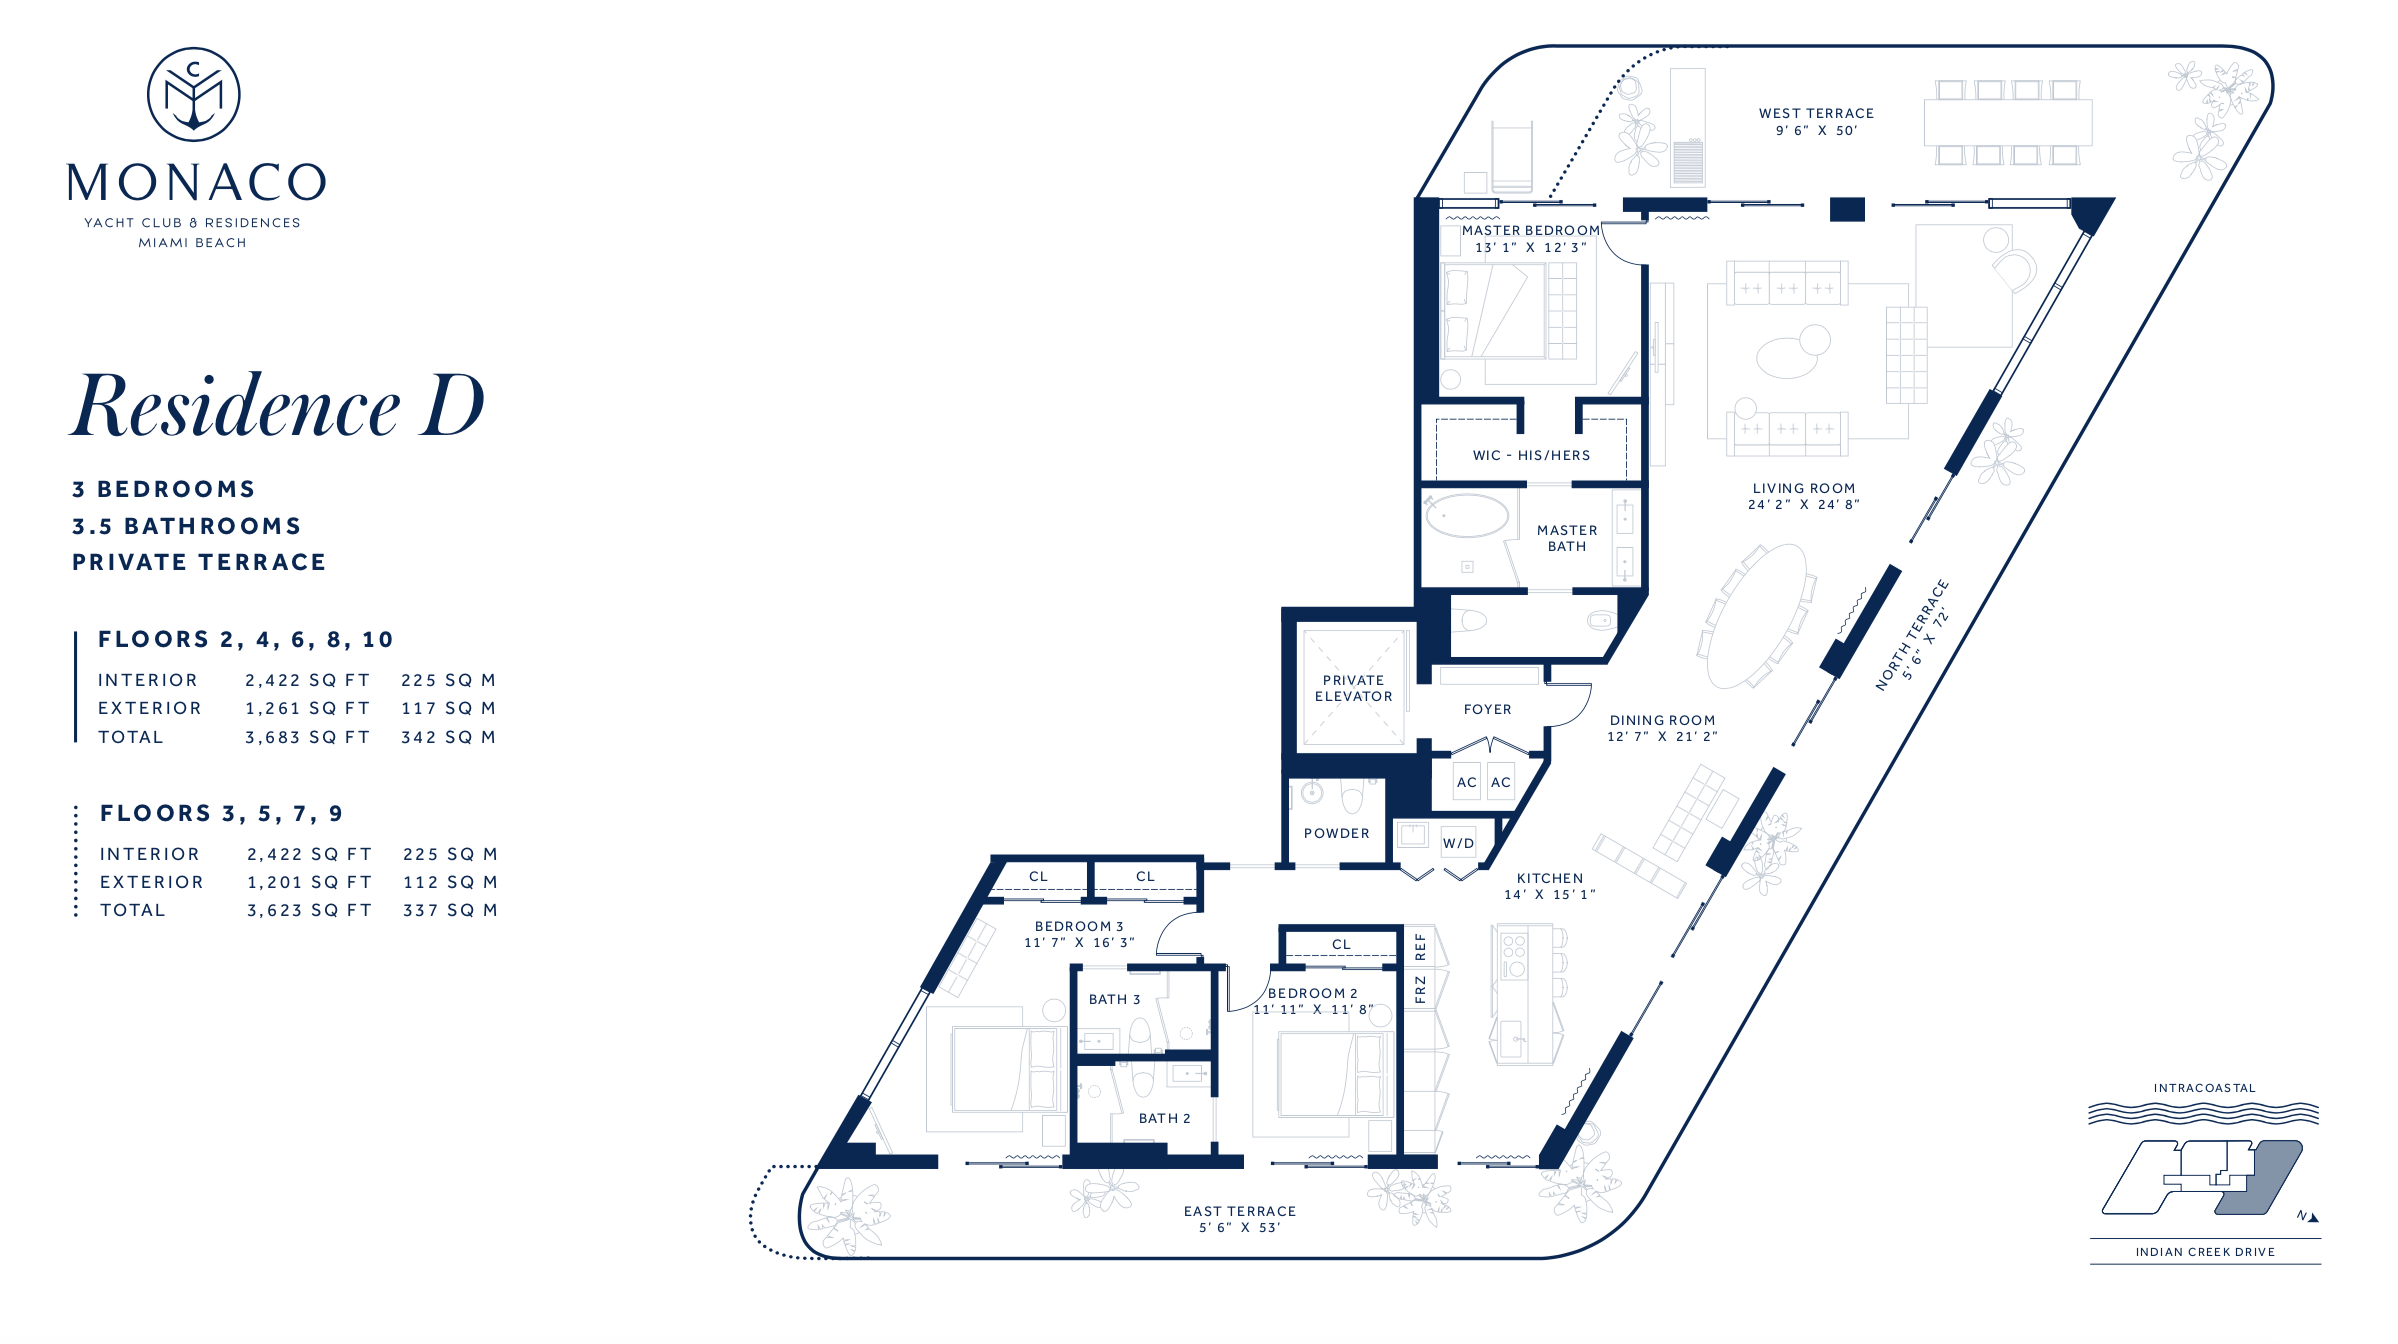 Residence D at Monaco Yacht Club and Residences Miami Beach | 3 Bedrooms